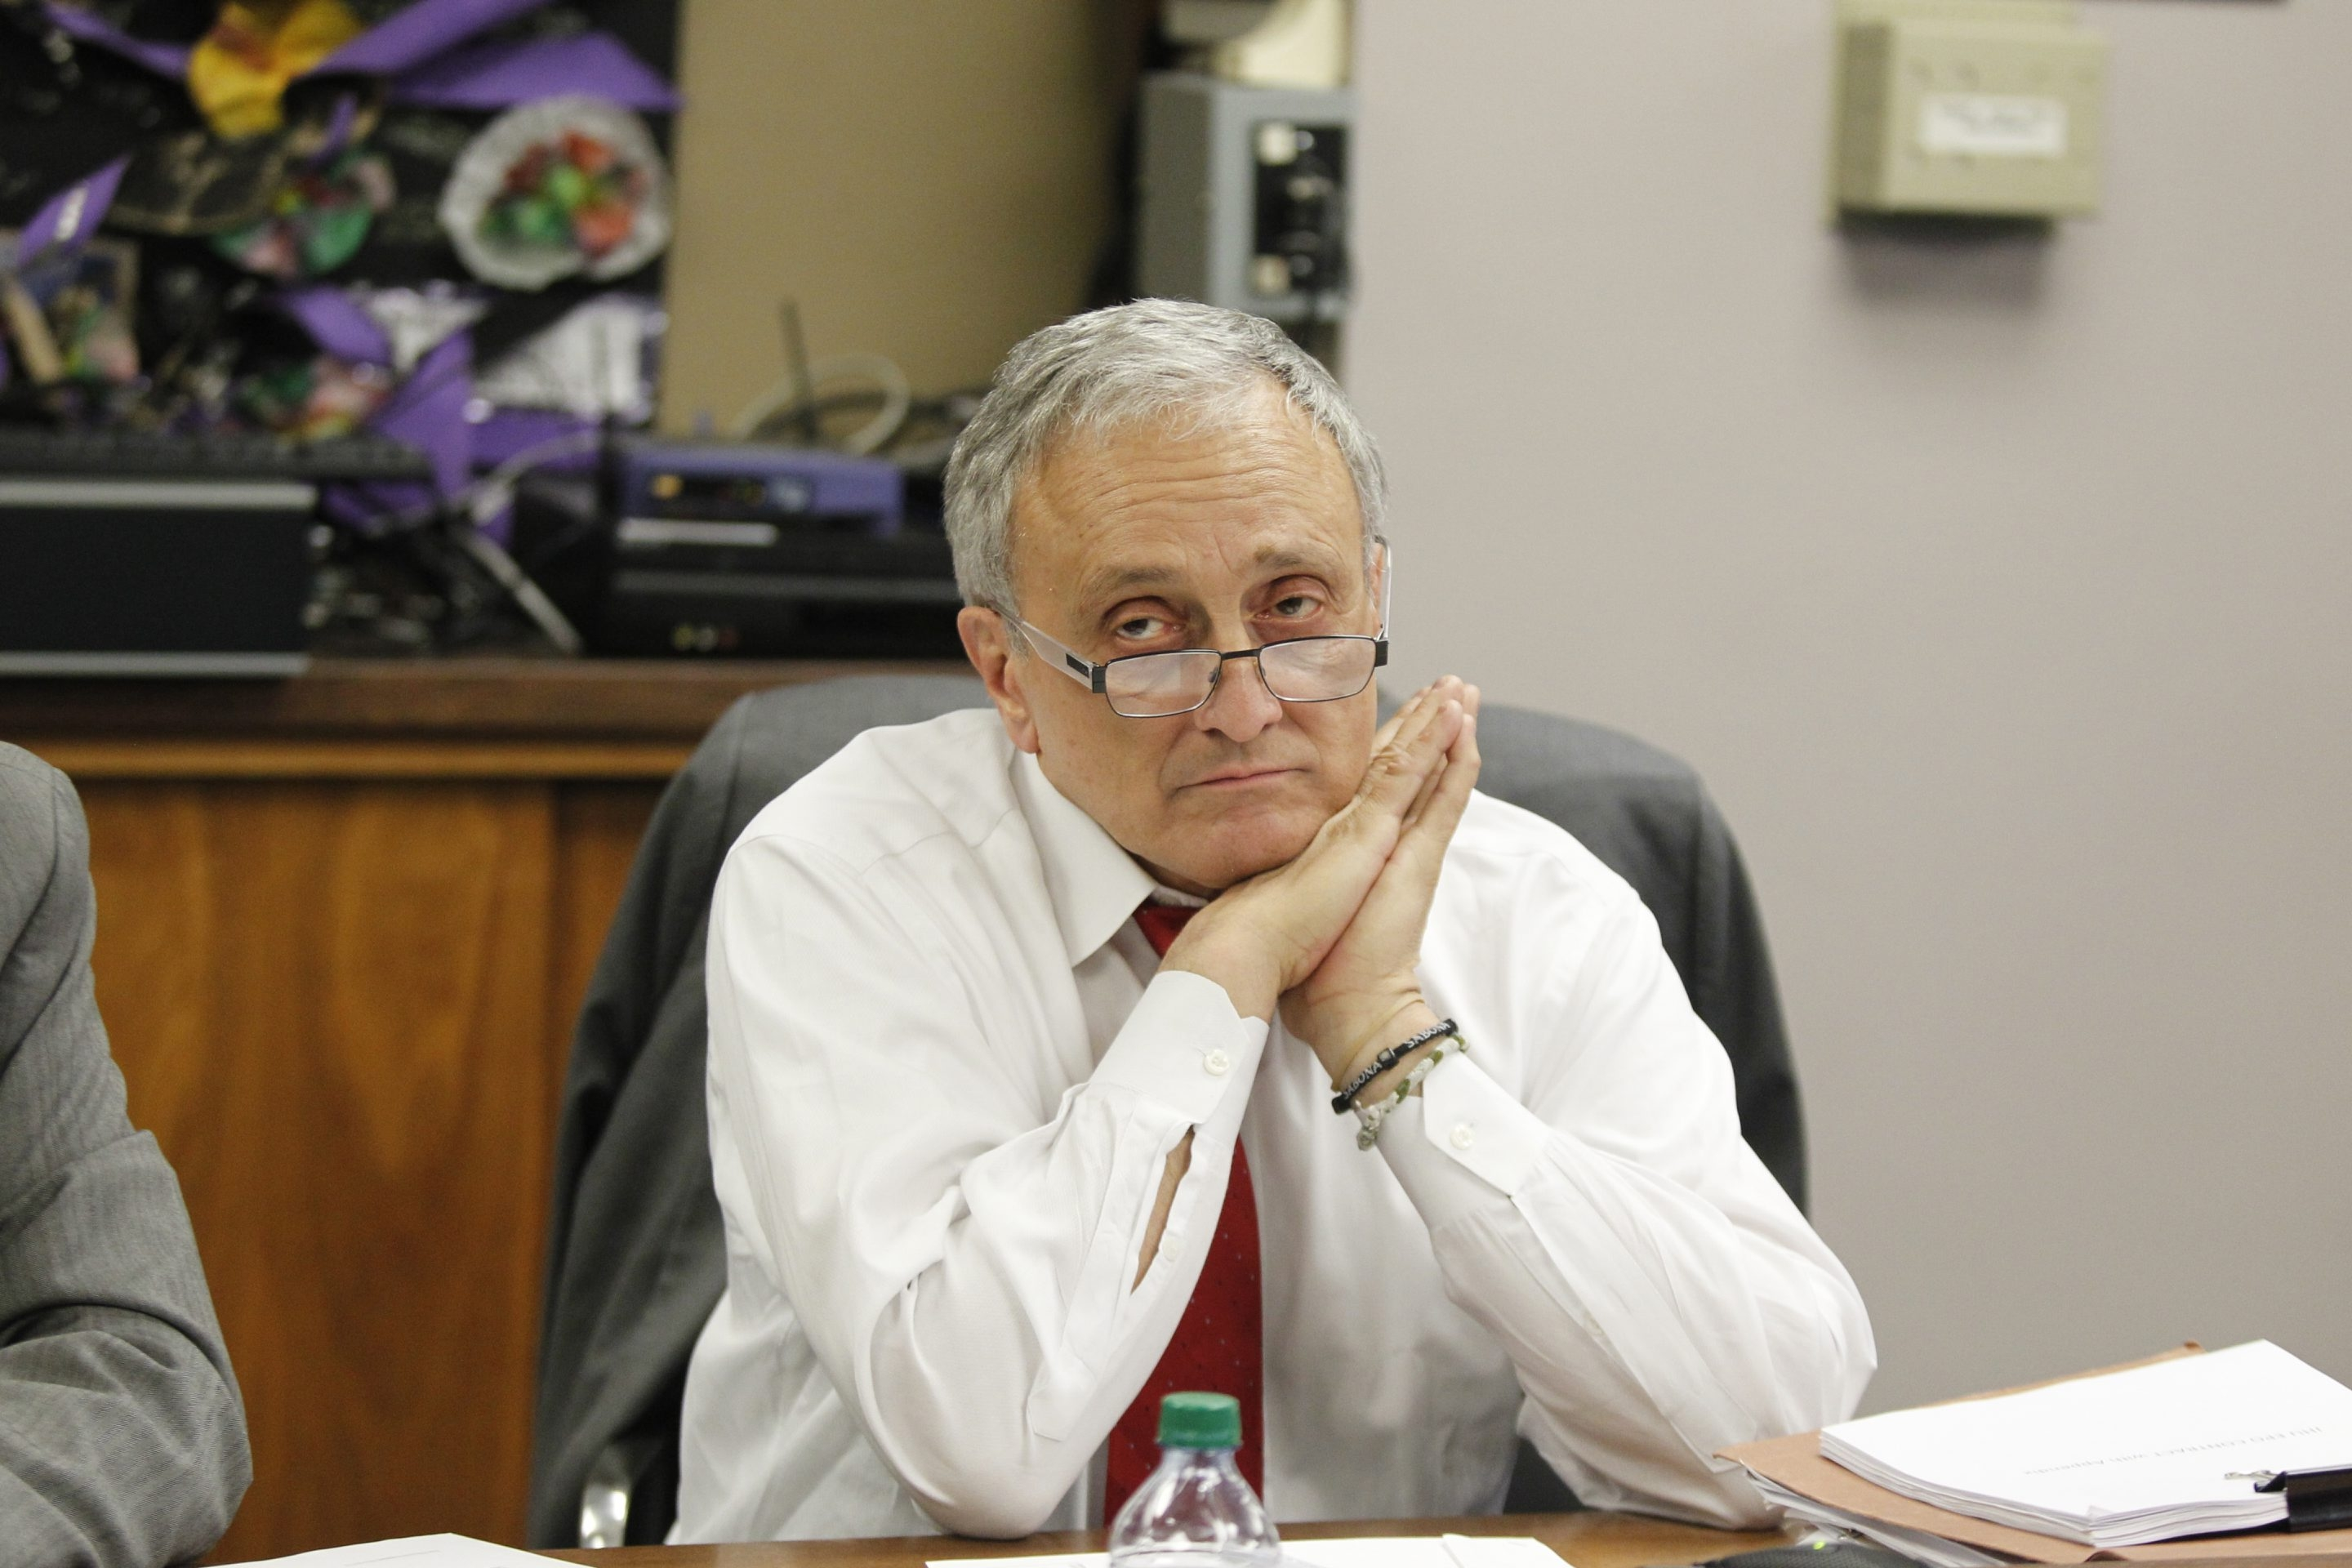 """Some parents and community members laud Carl Paladino for """"telling it like it is,"""" but others say his comments are inflammatory and insensitive."""